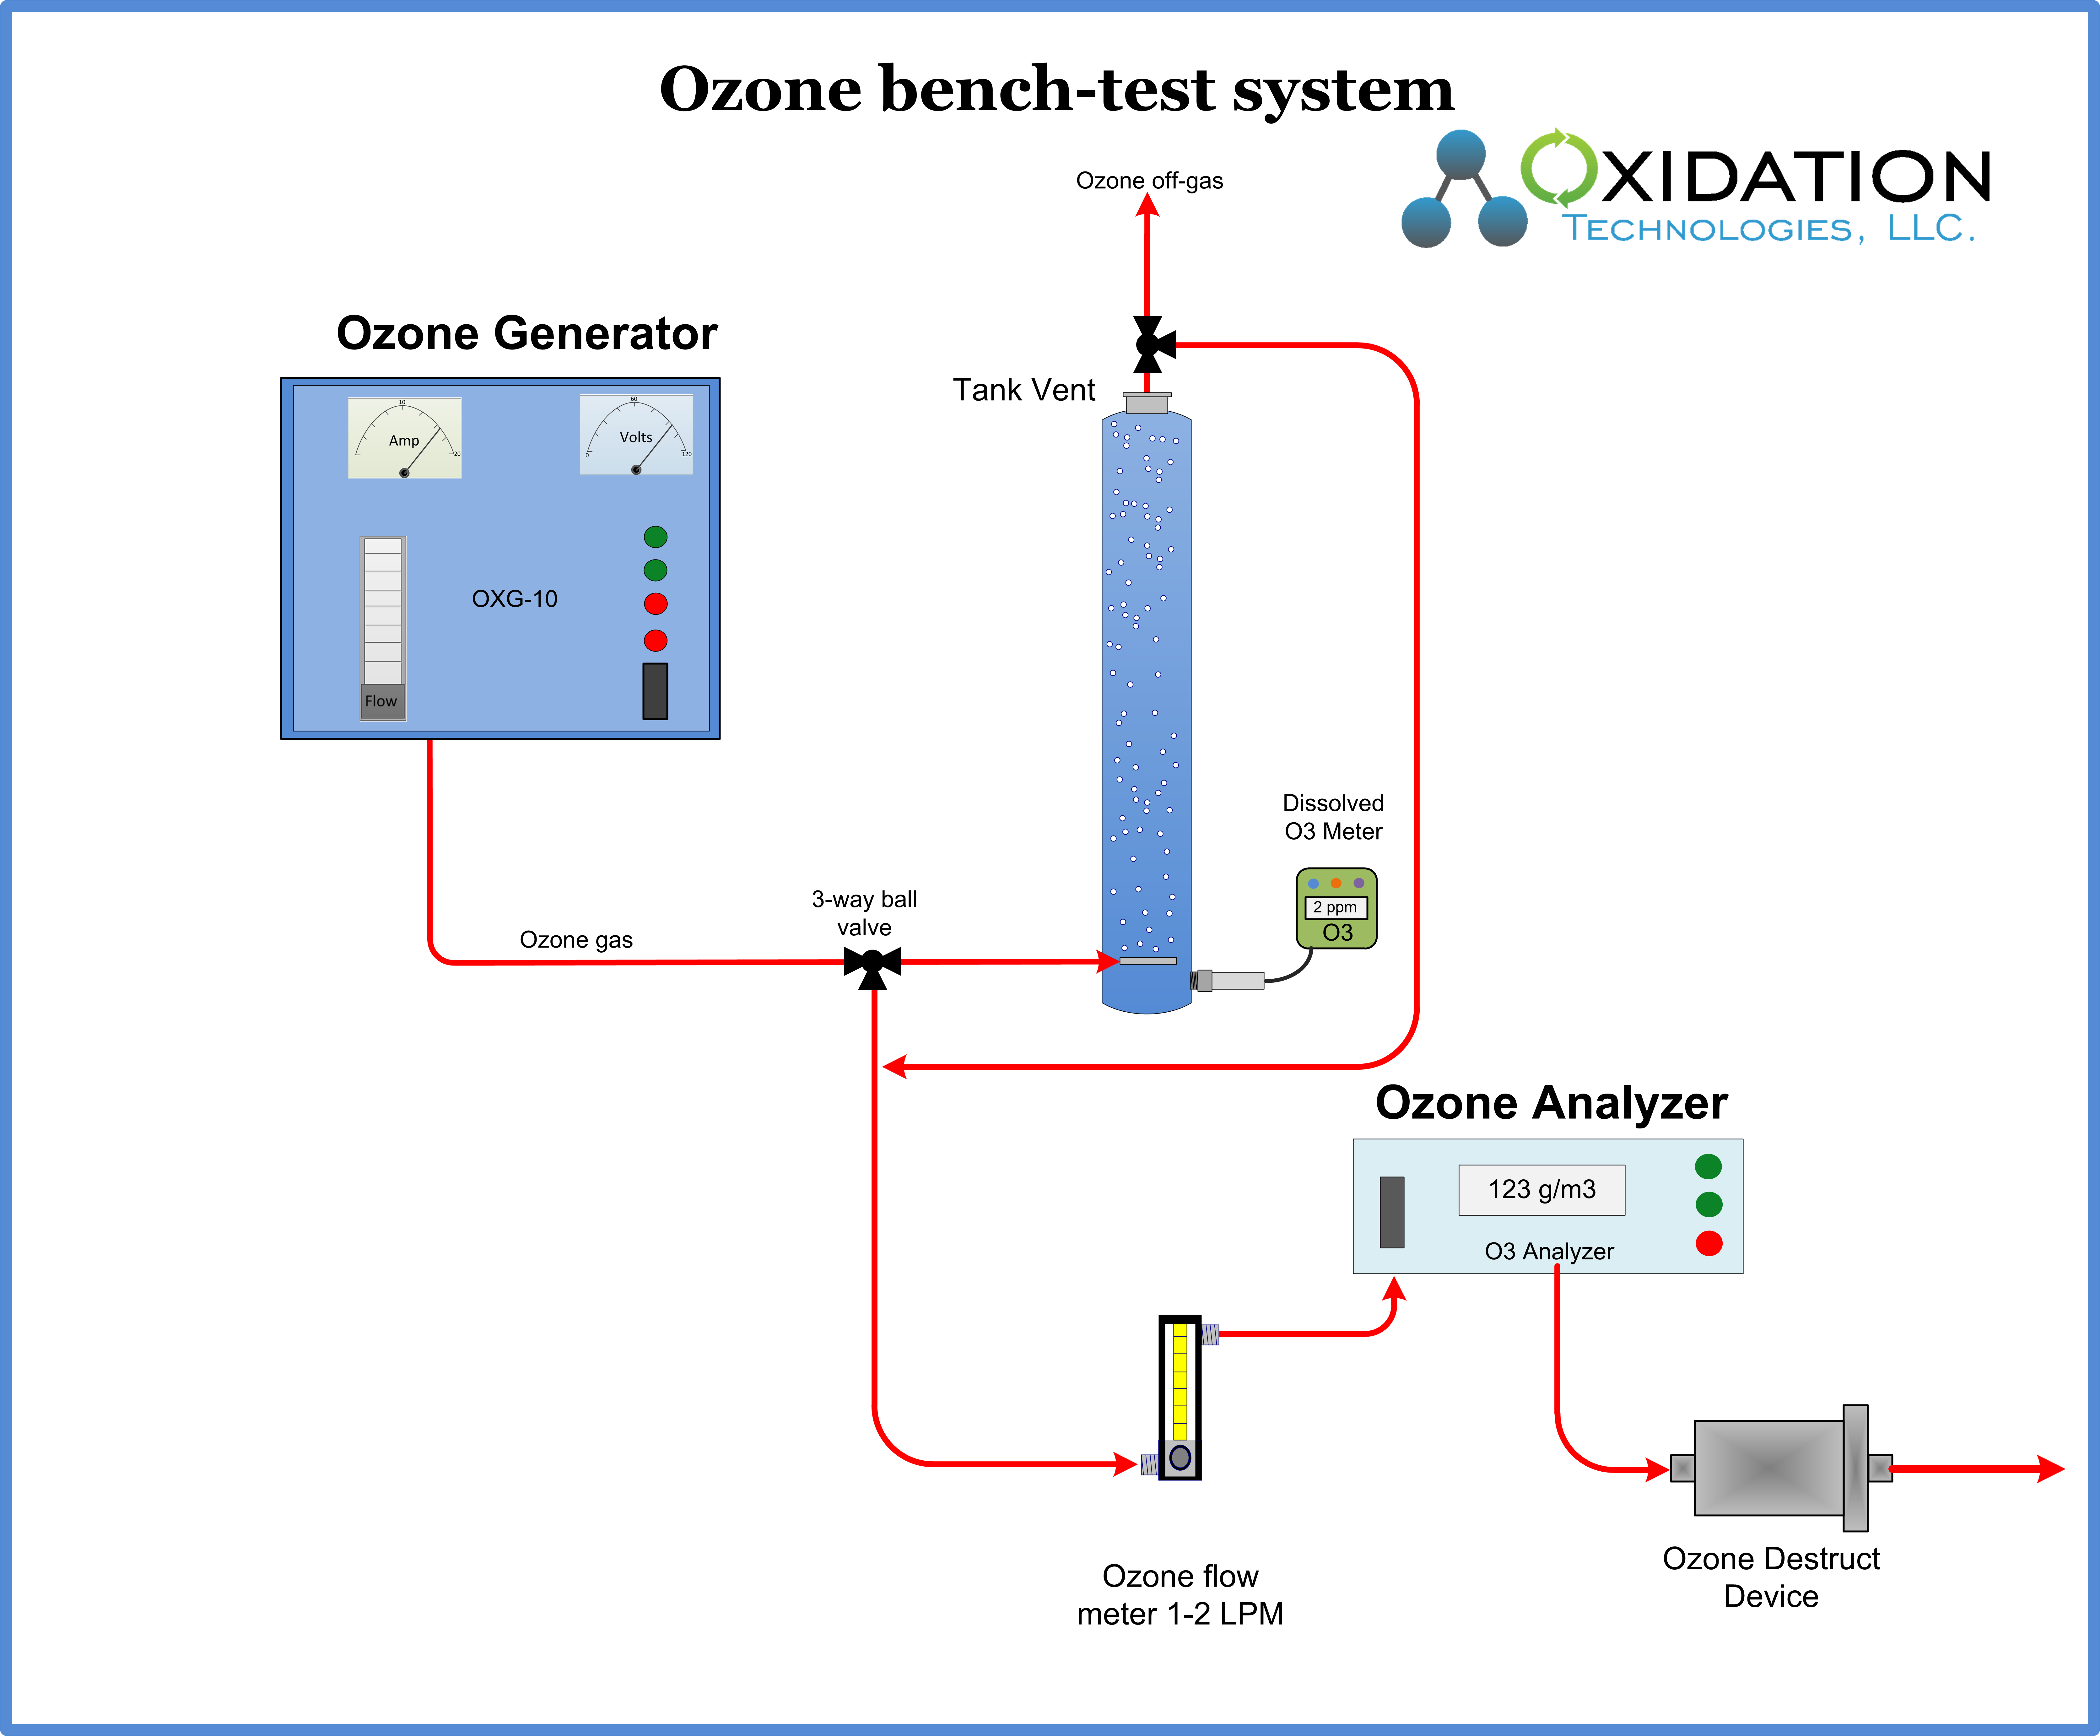 Oxidation Technologies News – Page 5 – Providing news and updates on